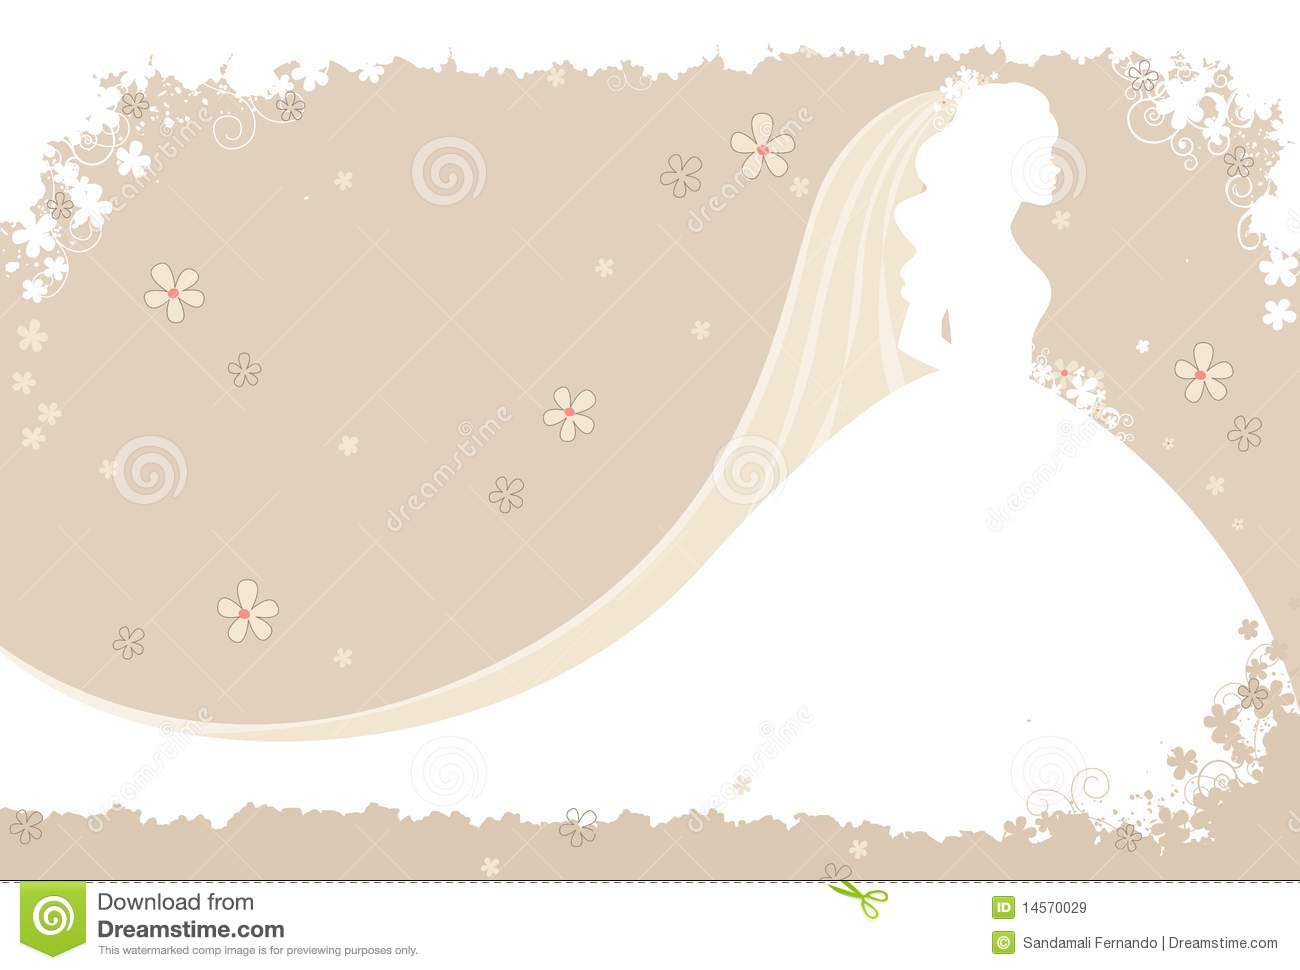 Free Backgrounds For Bridal Shower Invitations